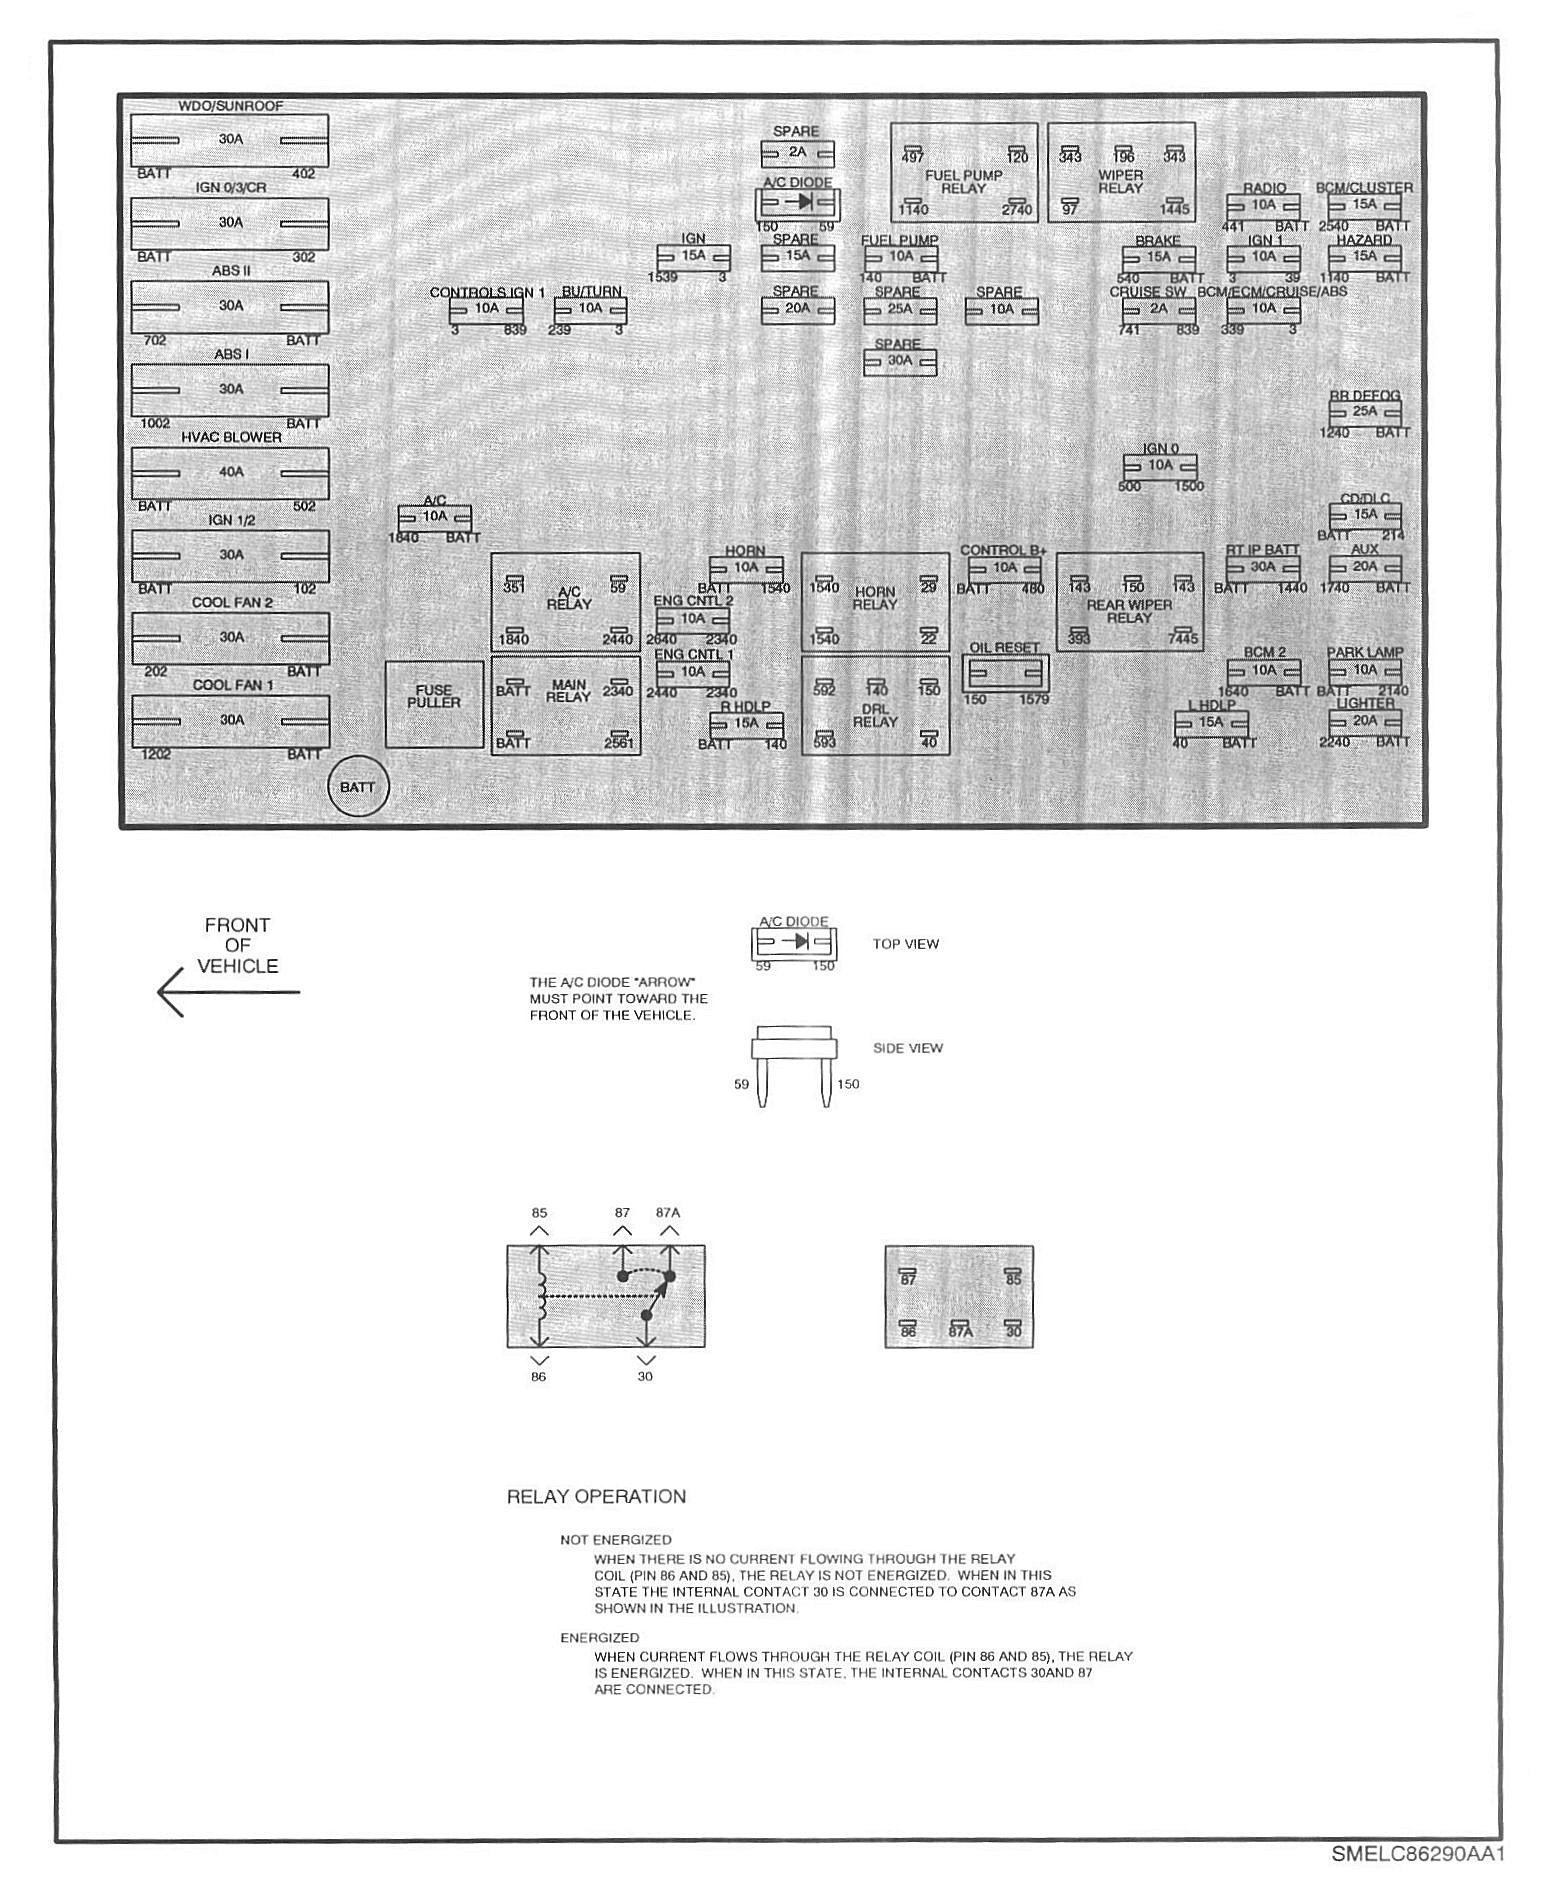 2002 Saturn L Series Fuse Box Diagram Archive Of Automotive Wiring Toyota Yaris L200 Another Blog About U2022 Rh Ok2 Infoservice Ru